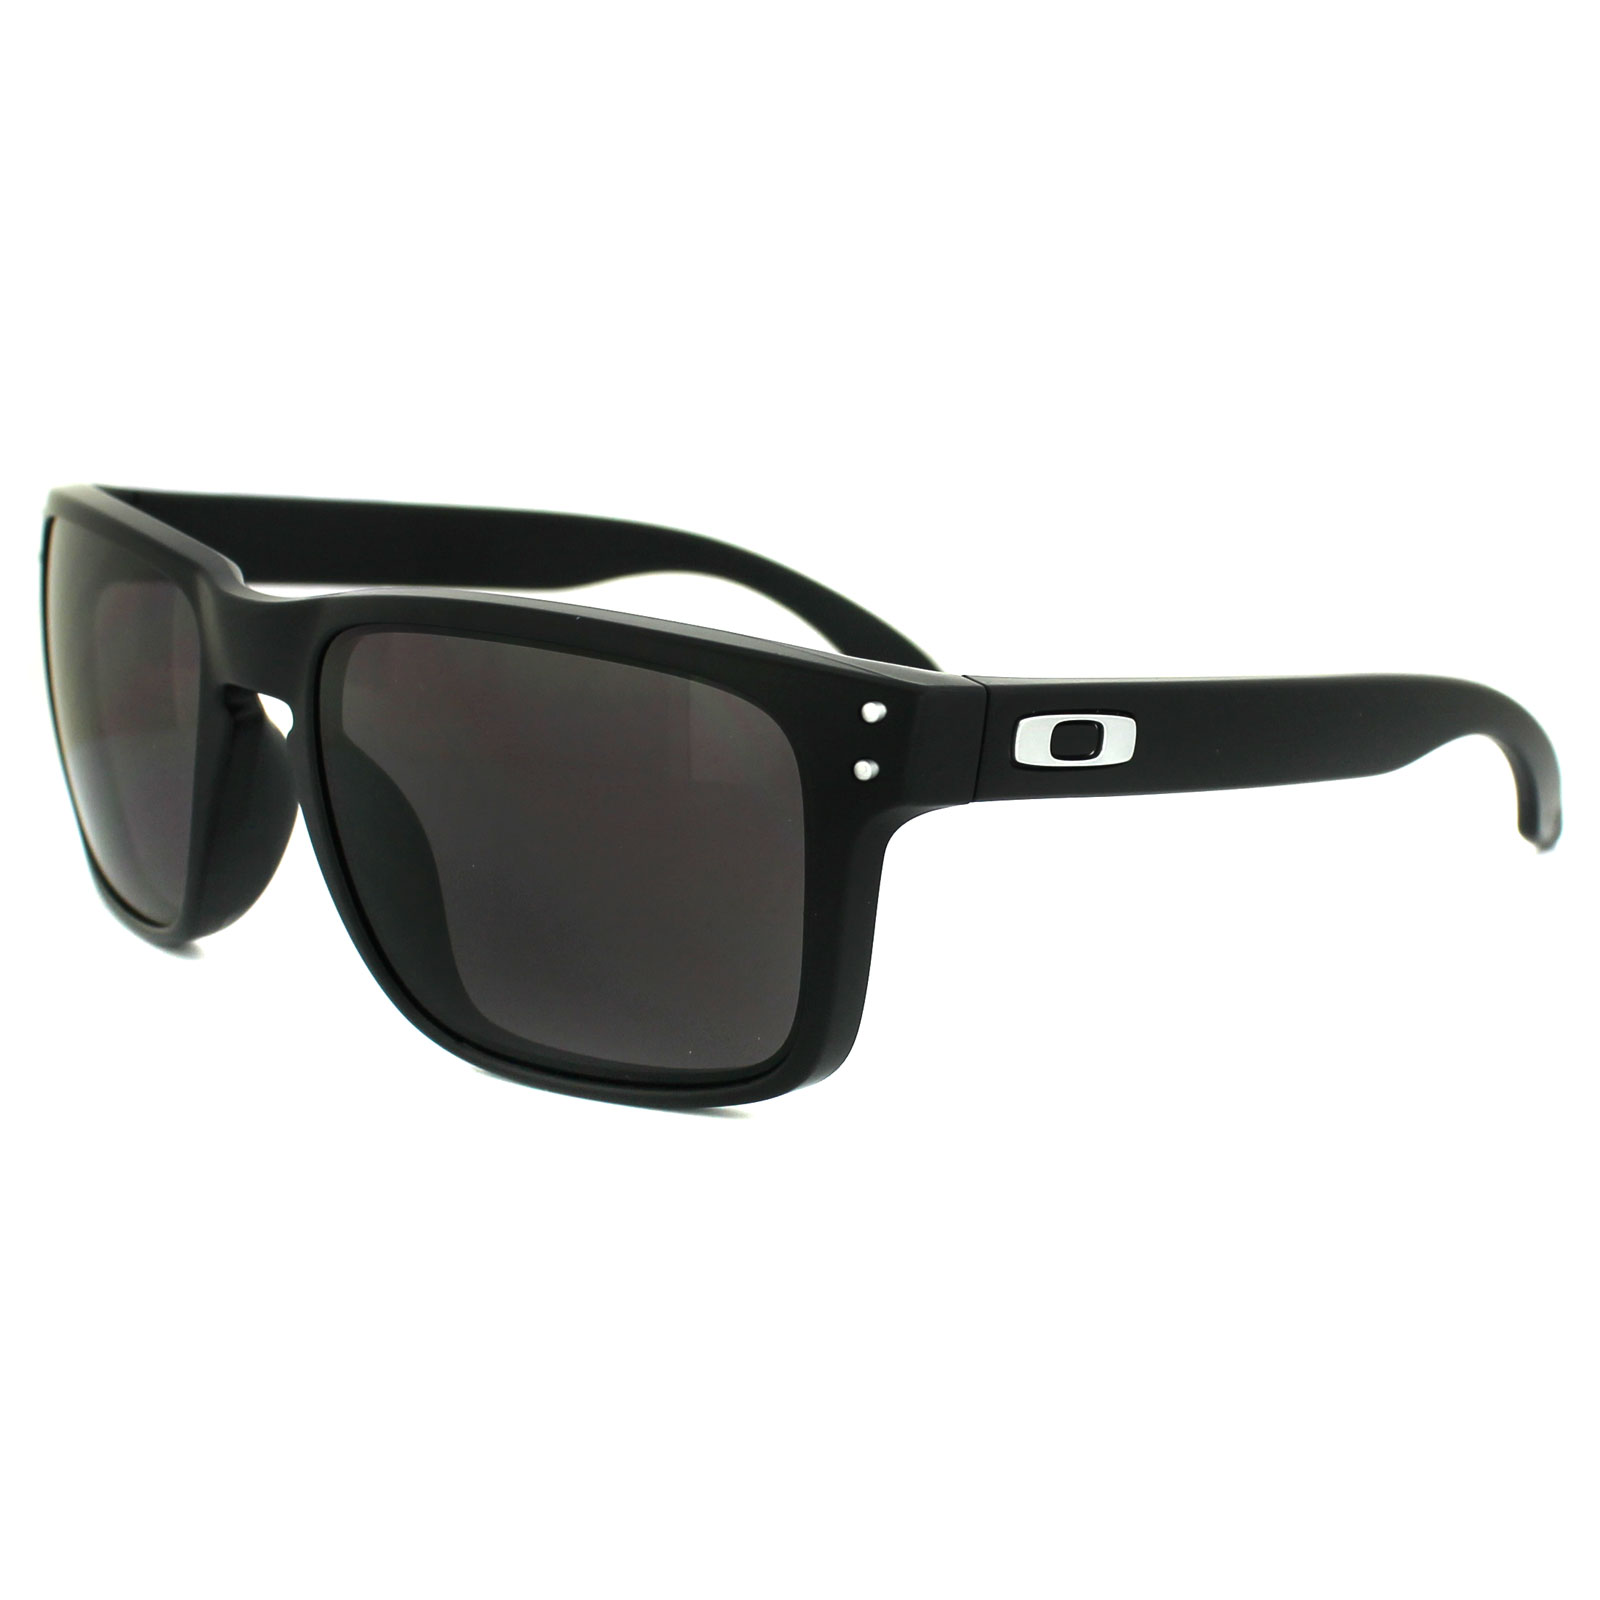 discount oakley sunglasses for men  oakley holbrook sunglasses